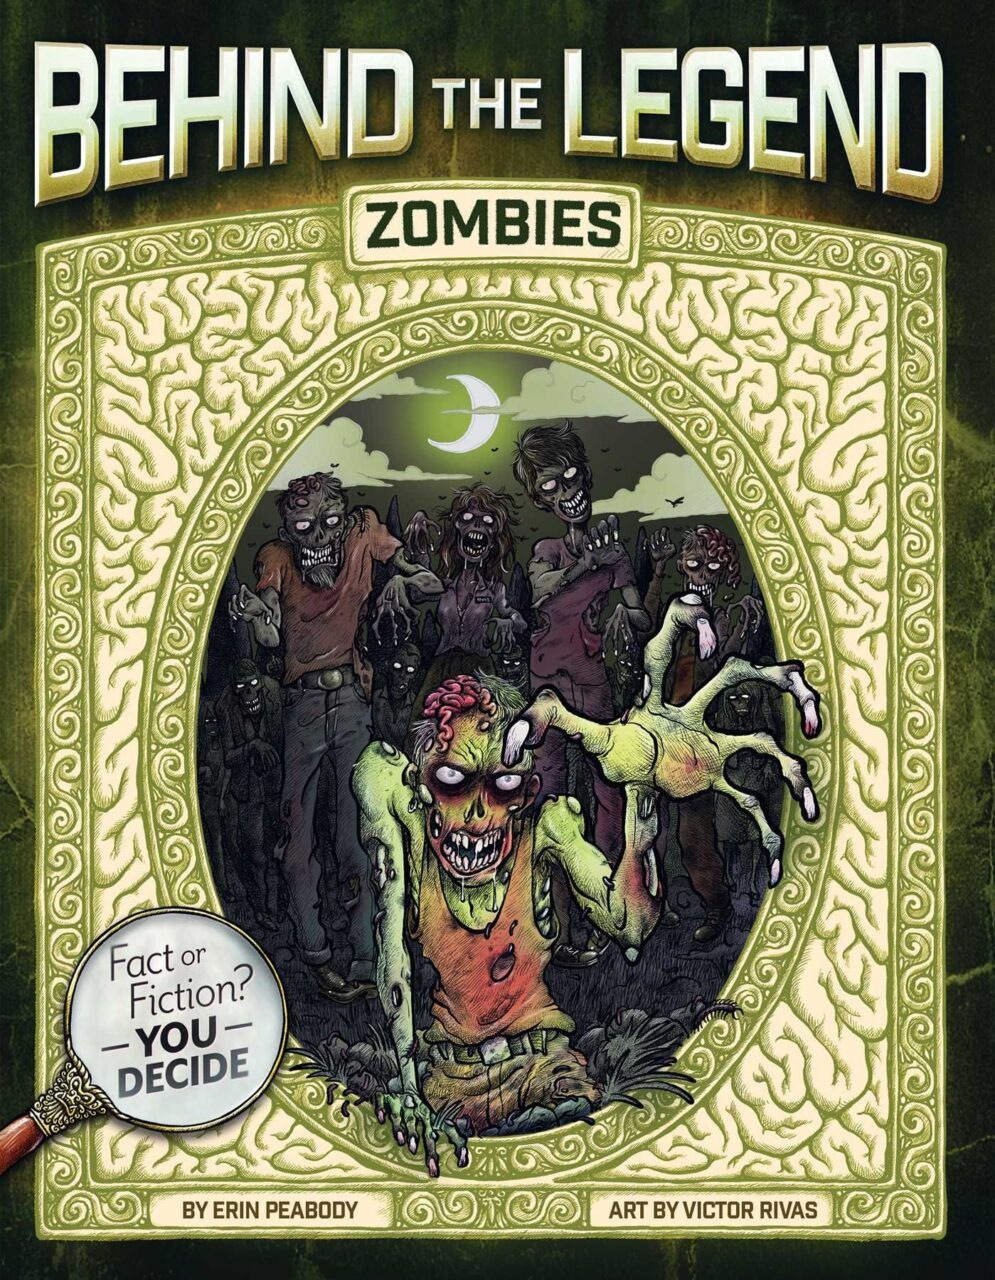 btl zombies scaled - Behind the Legend Book Series Perfect Intro to Horror for Kids